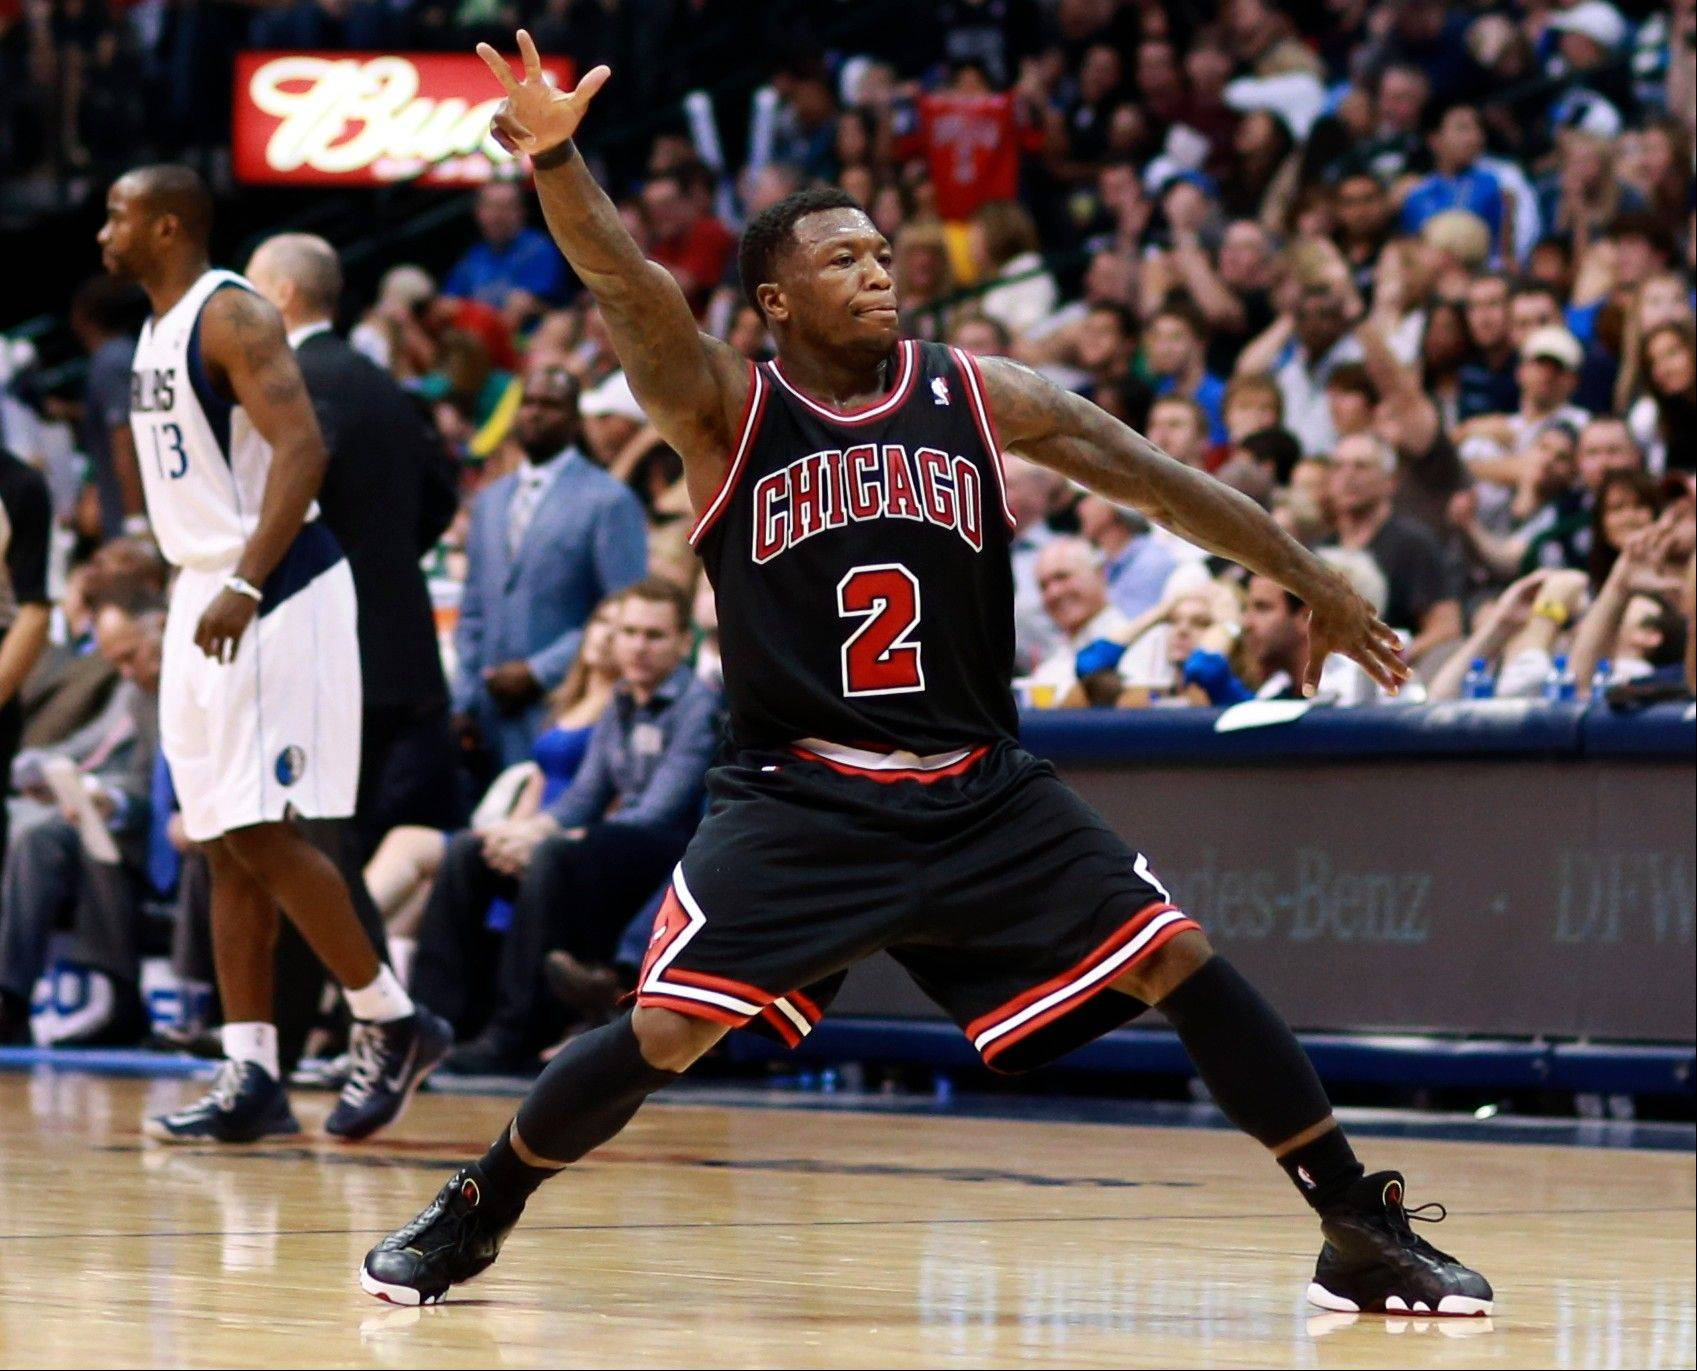 Bulls guard Nate Robinson celebrates after hitting a 3-pointer against the Dallas Mavericks during the second half Saturday.